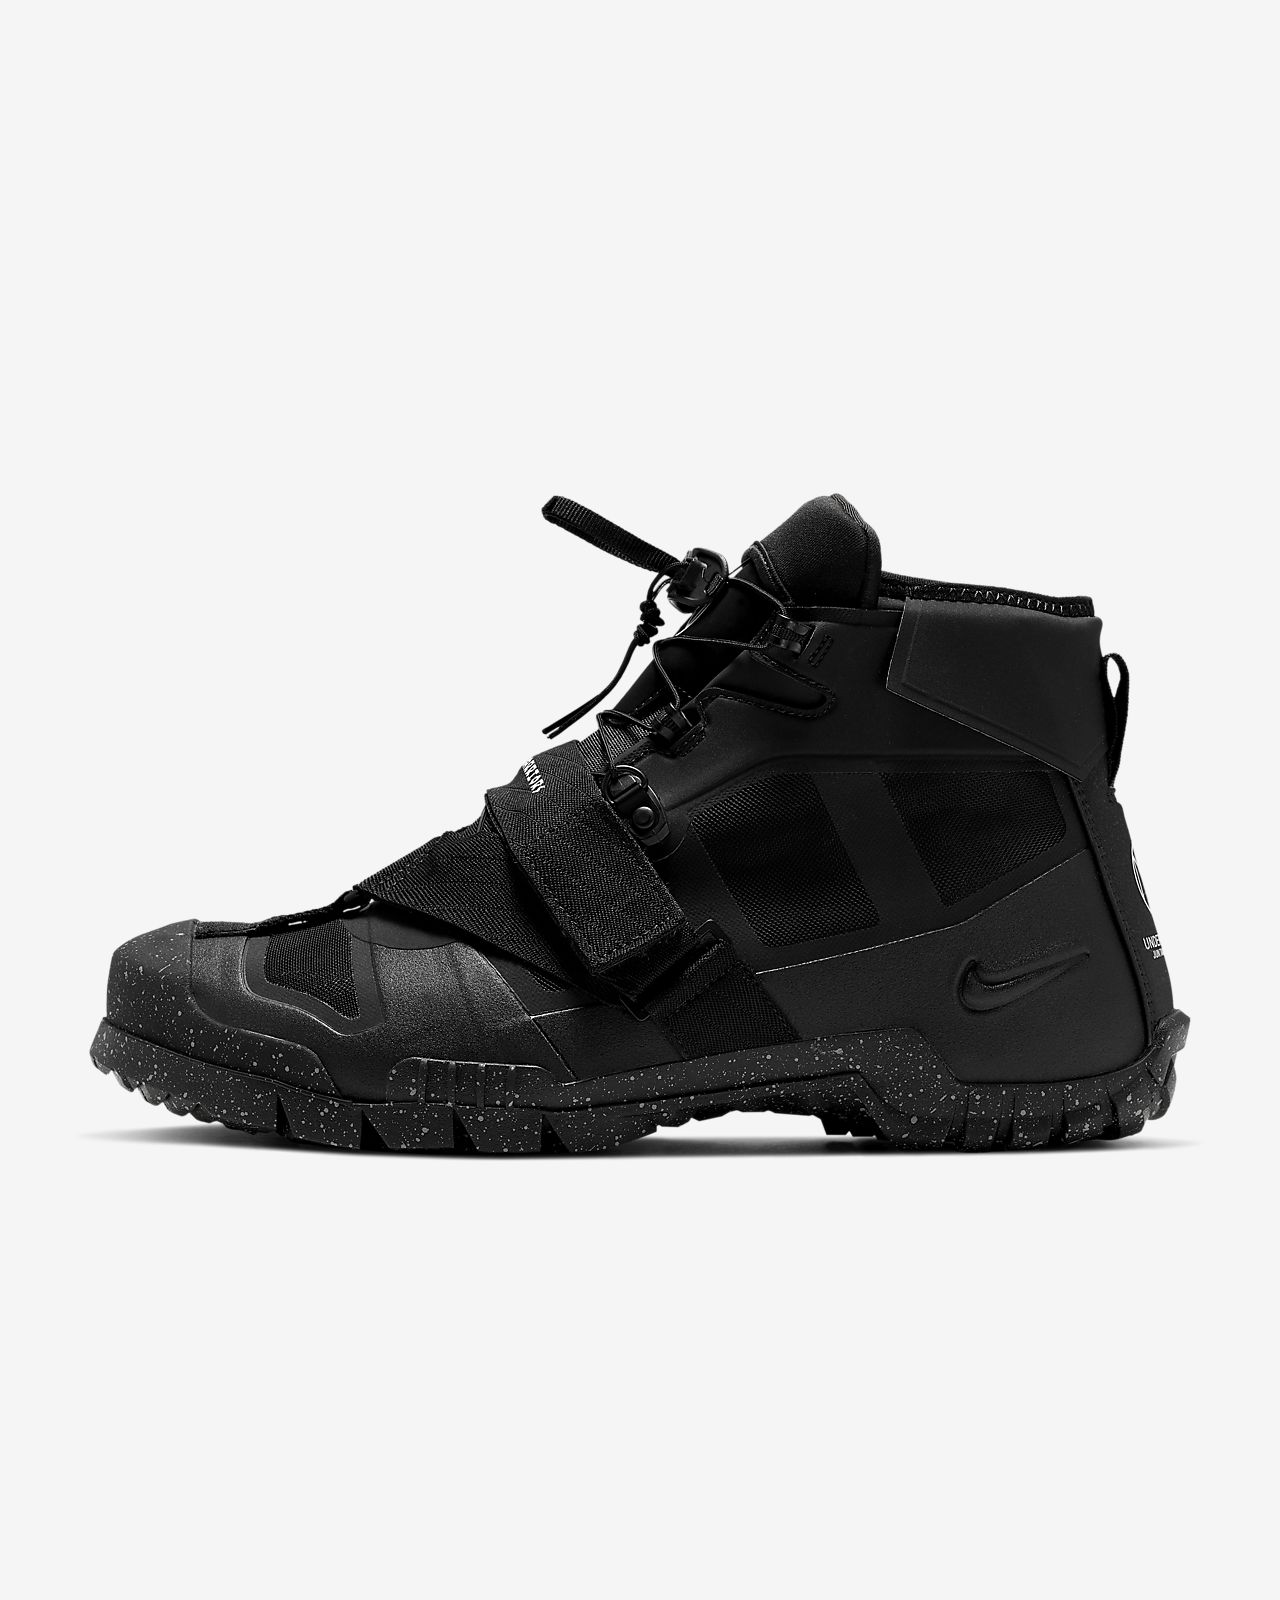 Nike x Undercover SFB Mountain Men's Boot